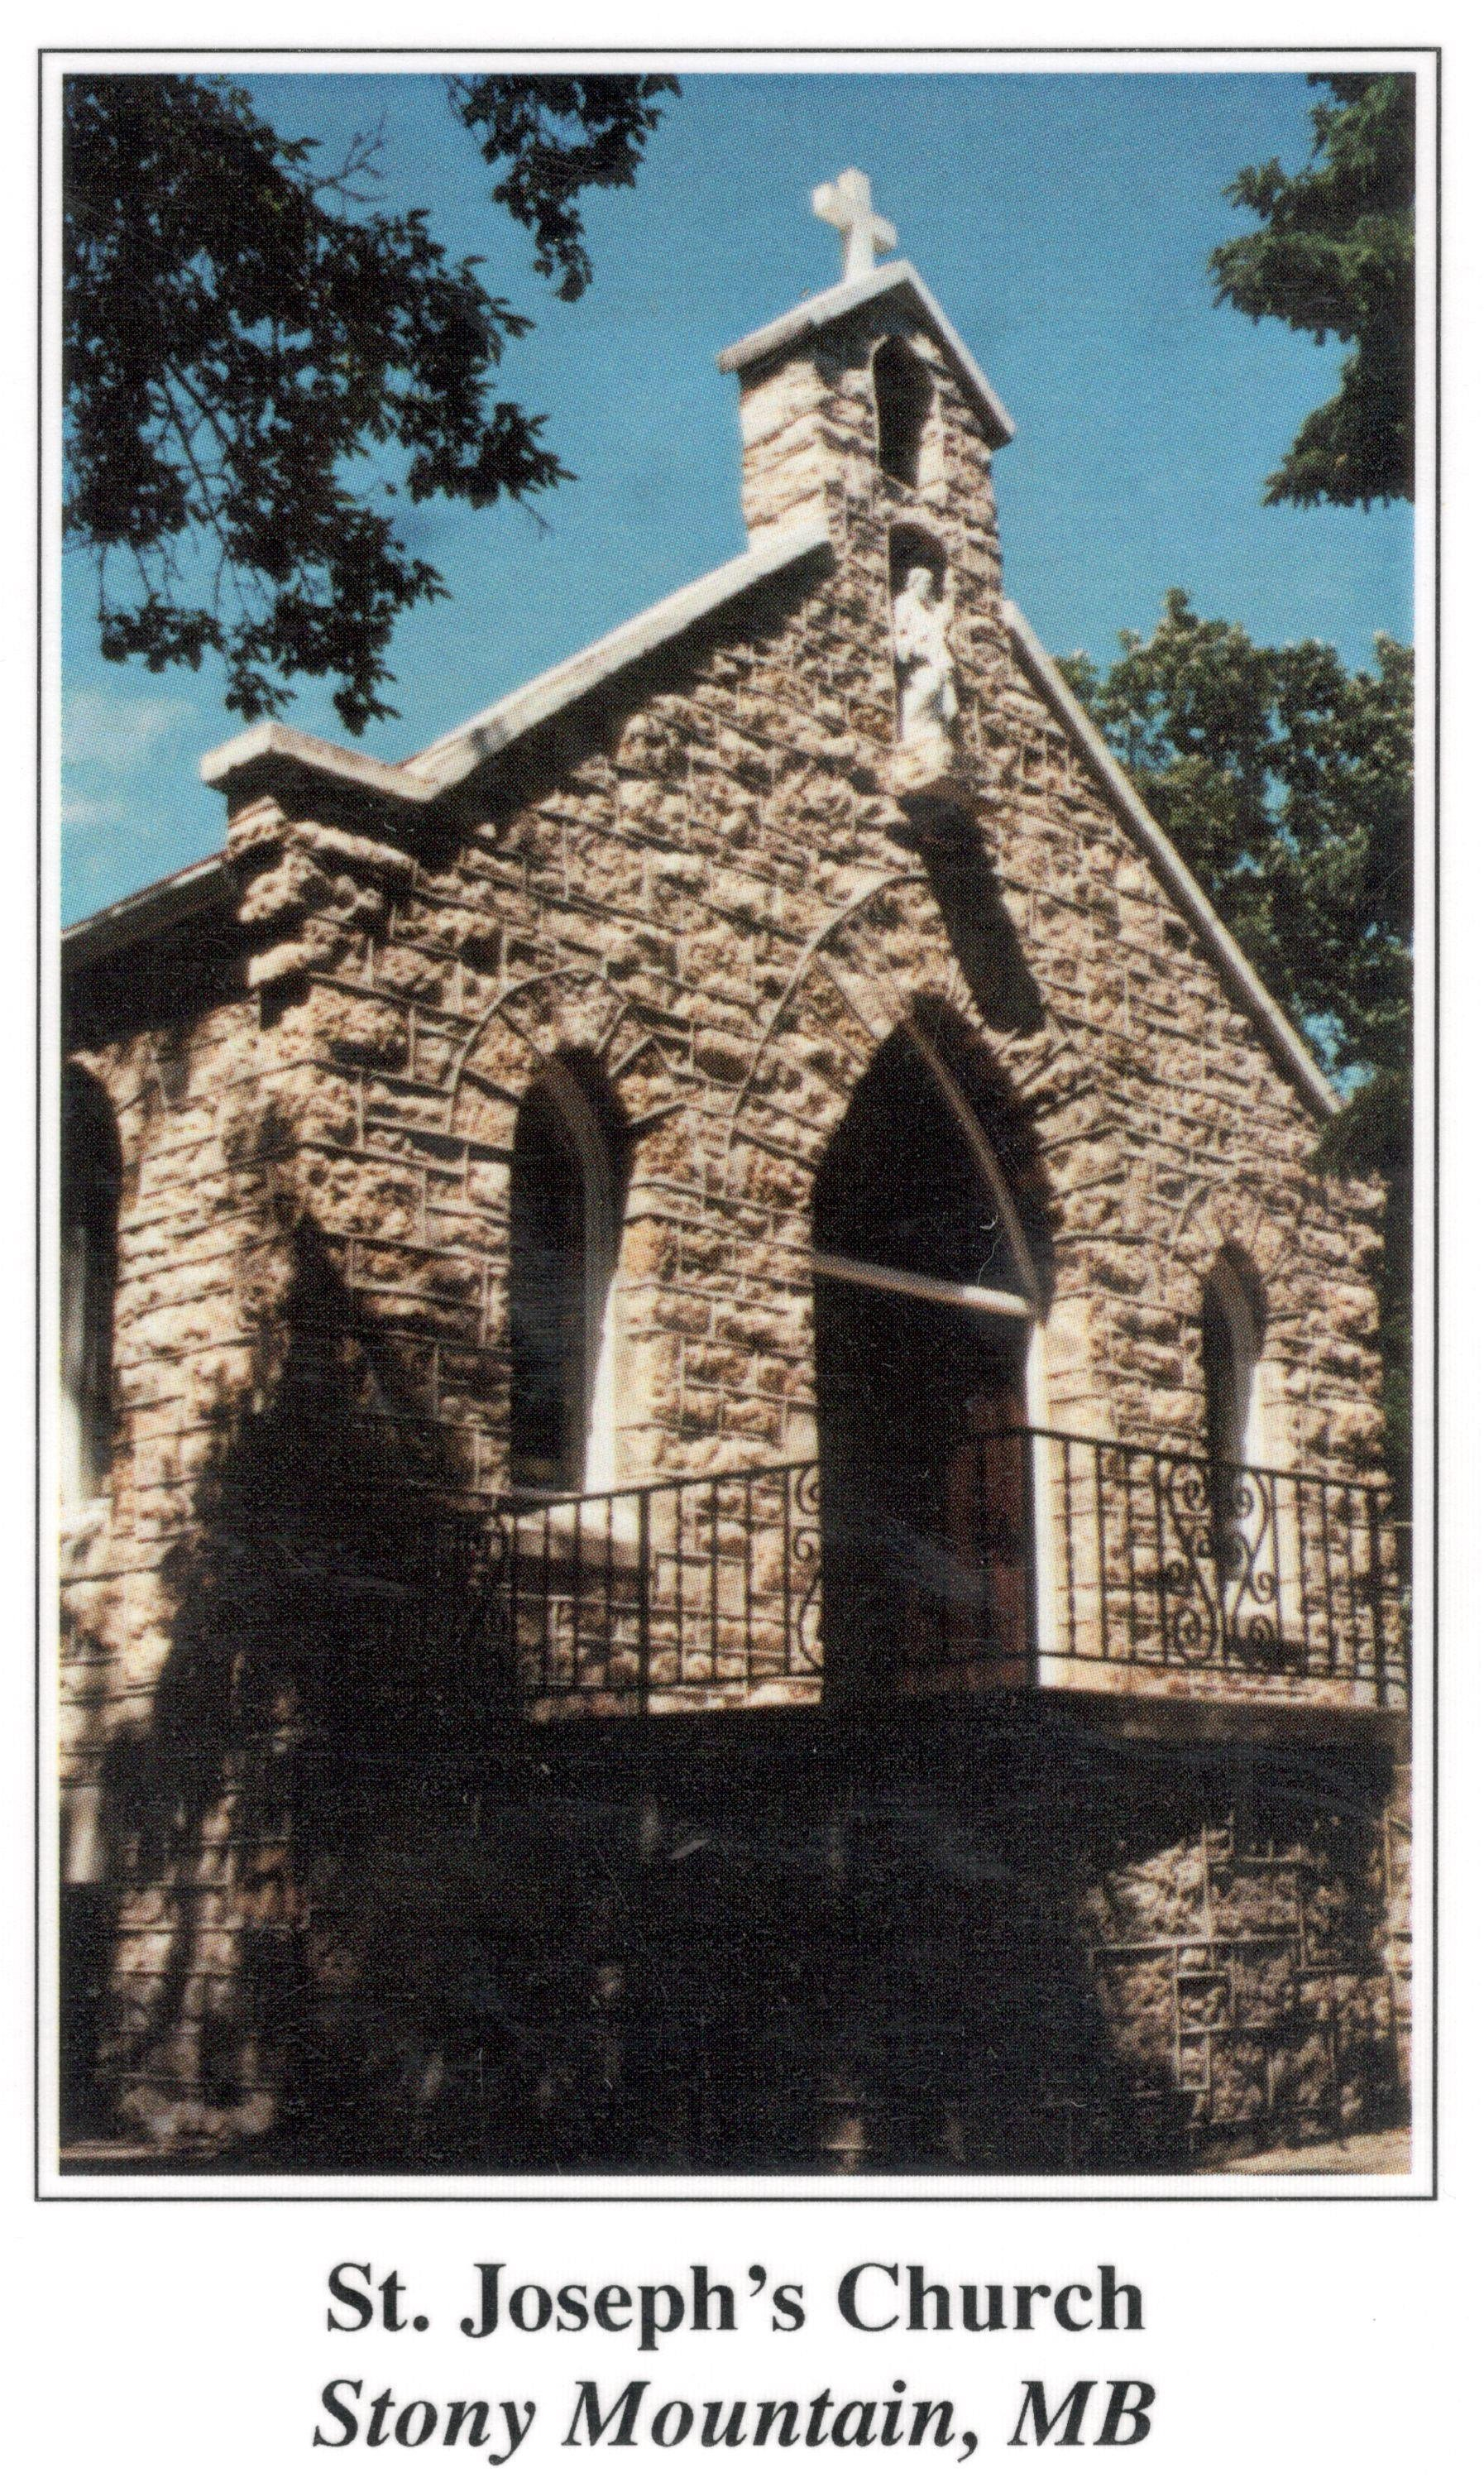 https://0901.nccdn.net/4_2/000/000/038/2d3/St.-Joseph-s-Church-1794x3000.jpg